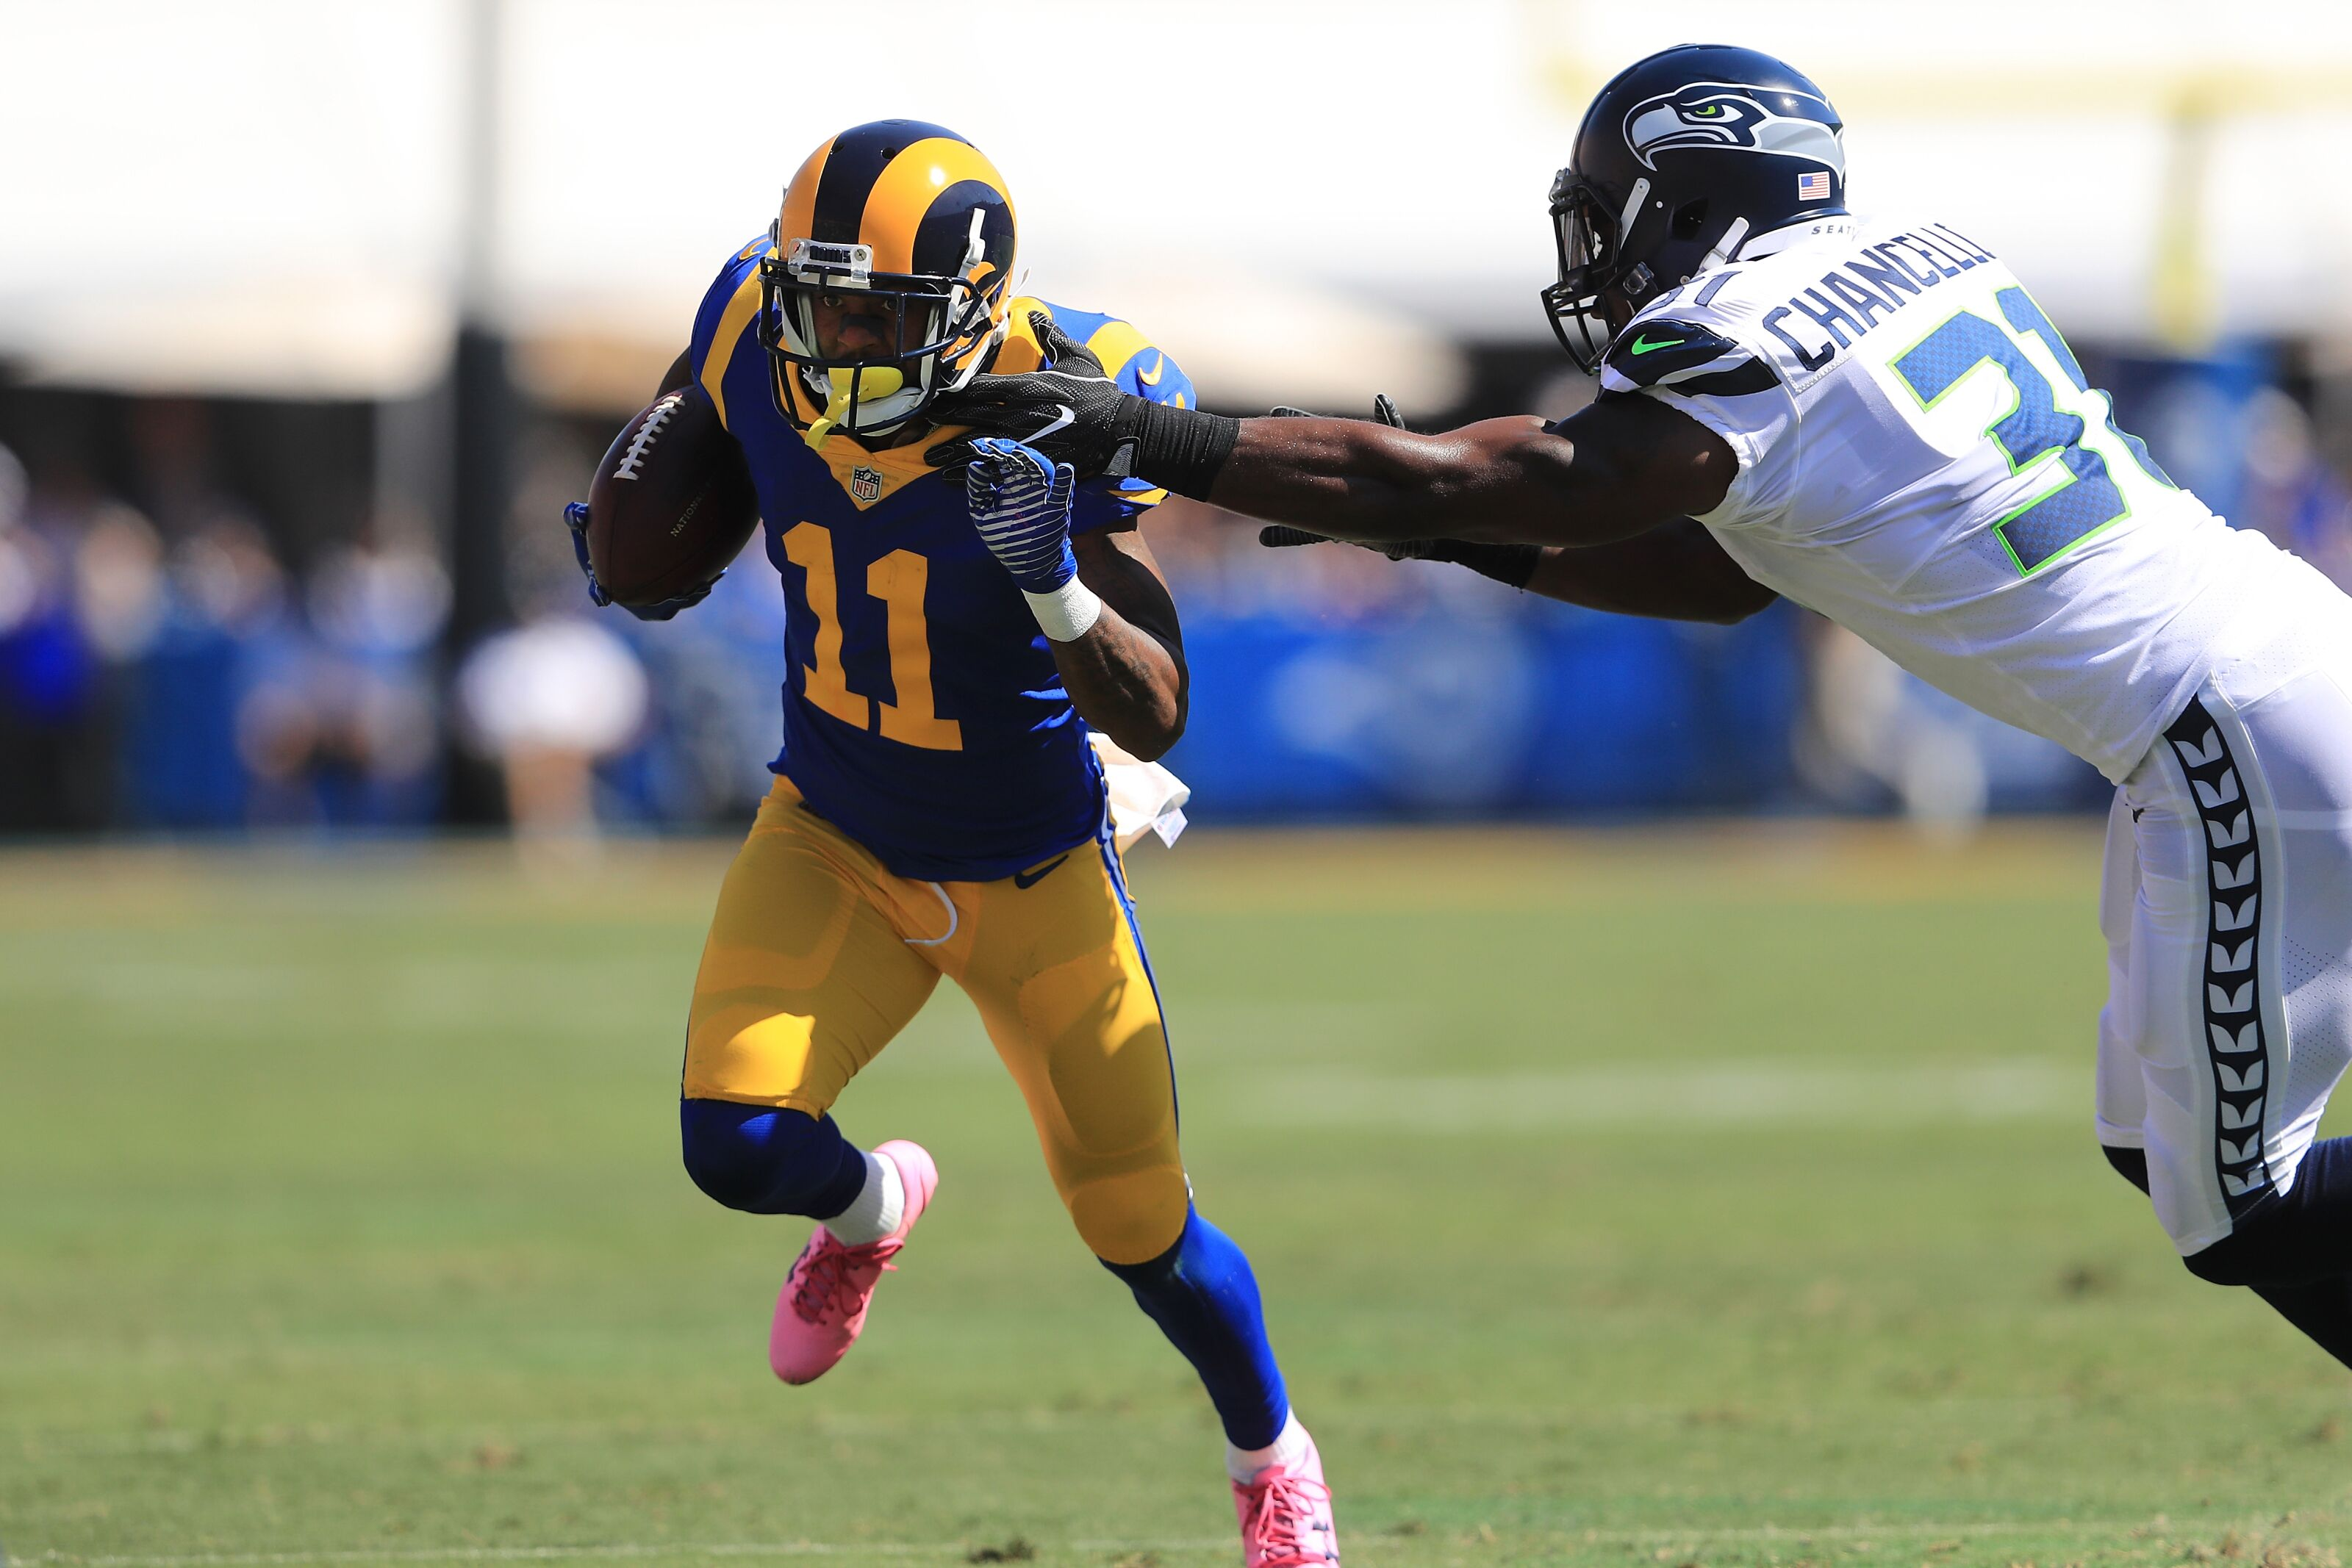 ef787f34332 Los Angeles Rams: Tavon Austin trade cleared way for rookies